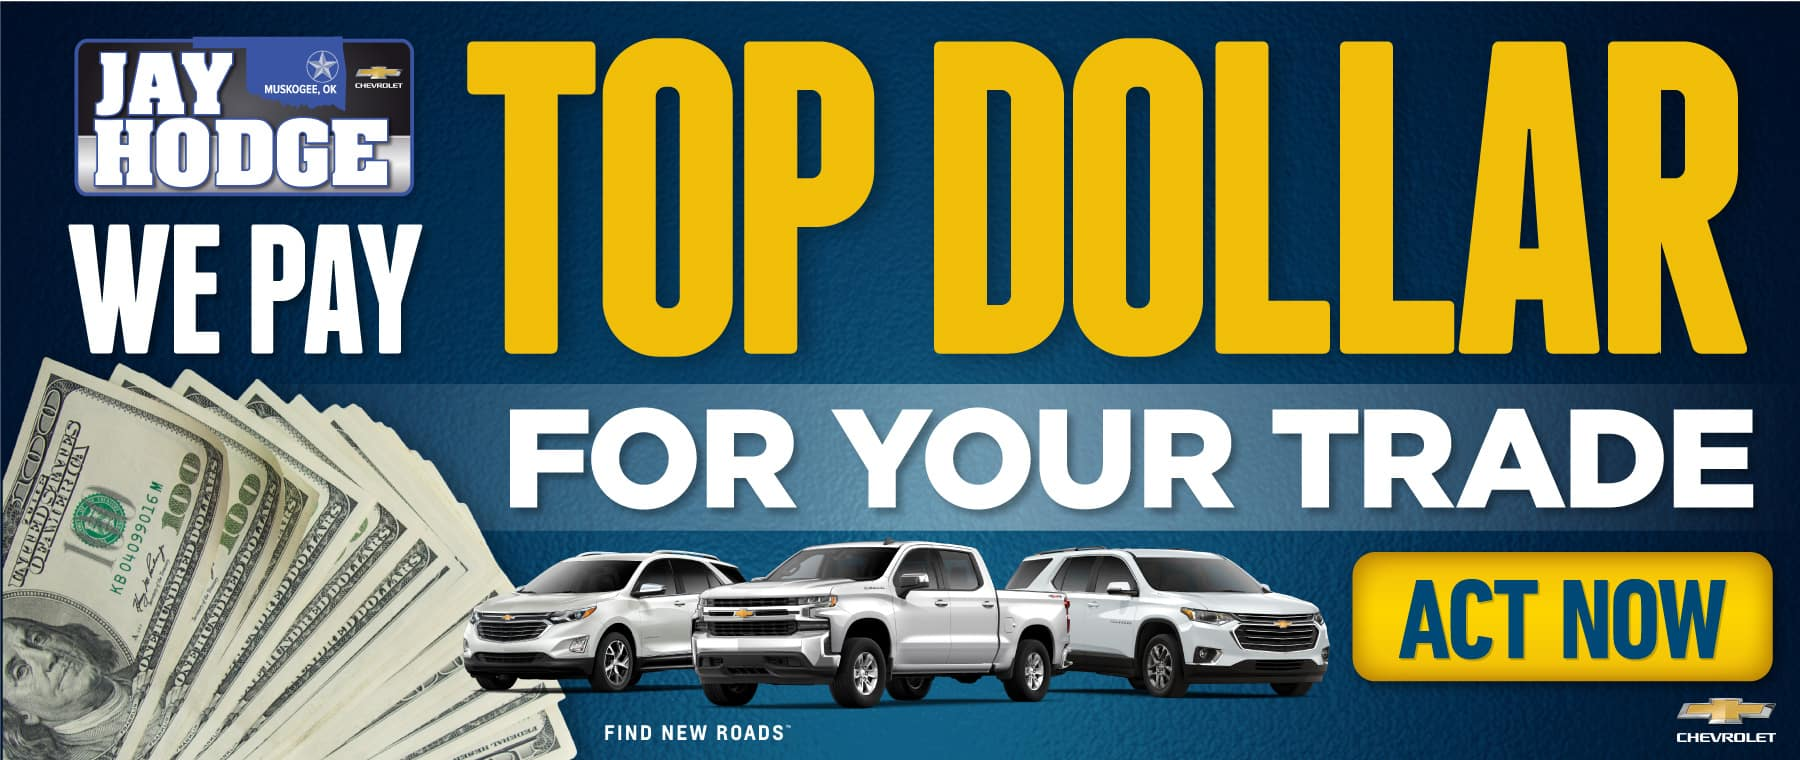 We Pay TOP DOLLAR for your Trade - Act Now